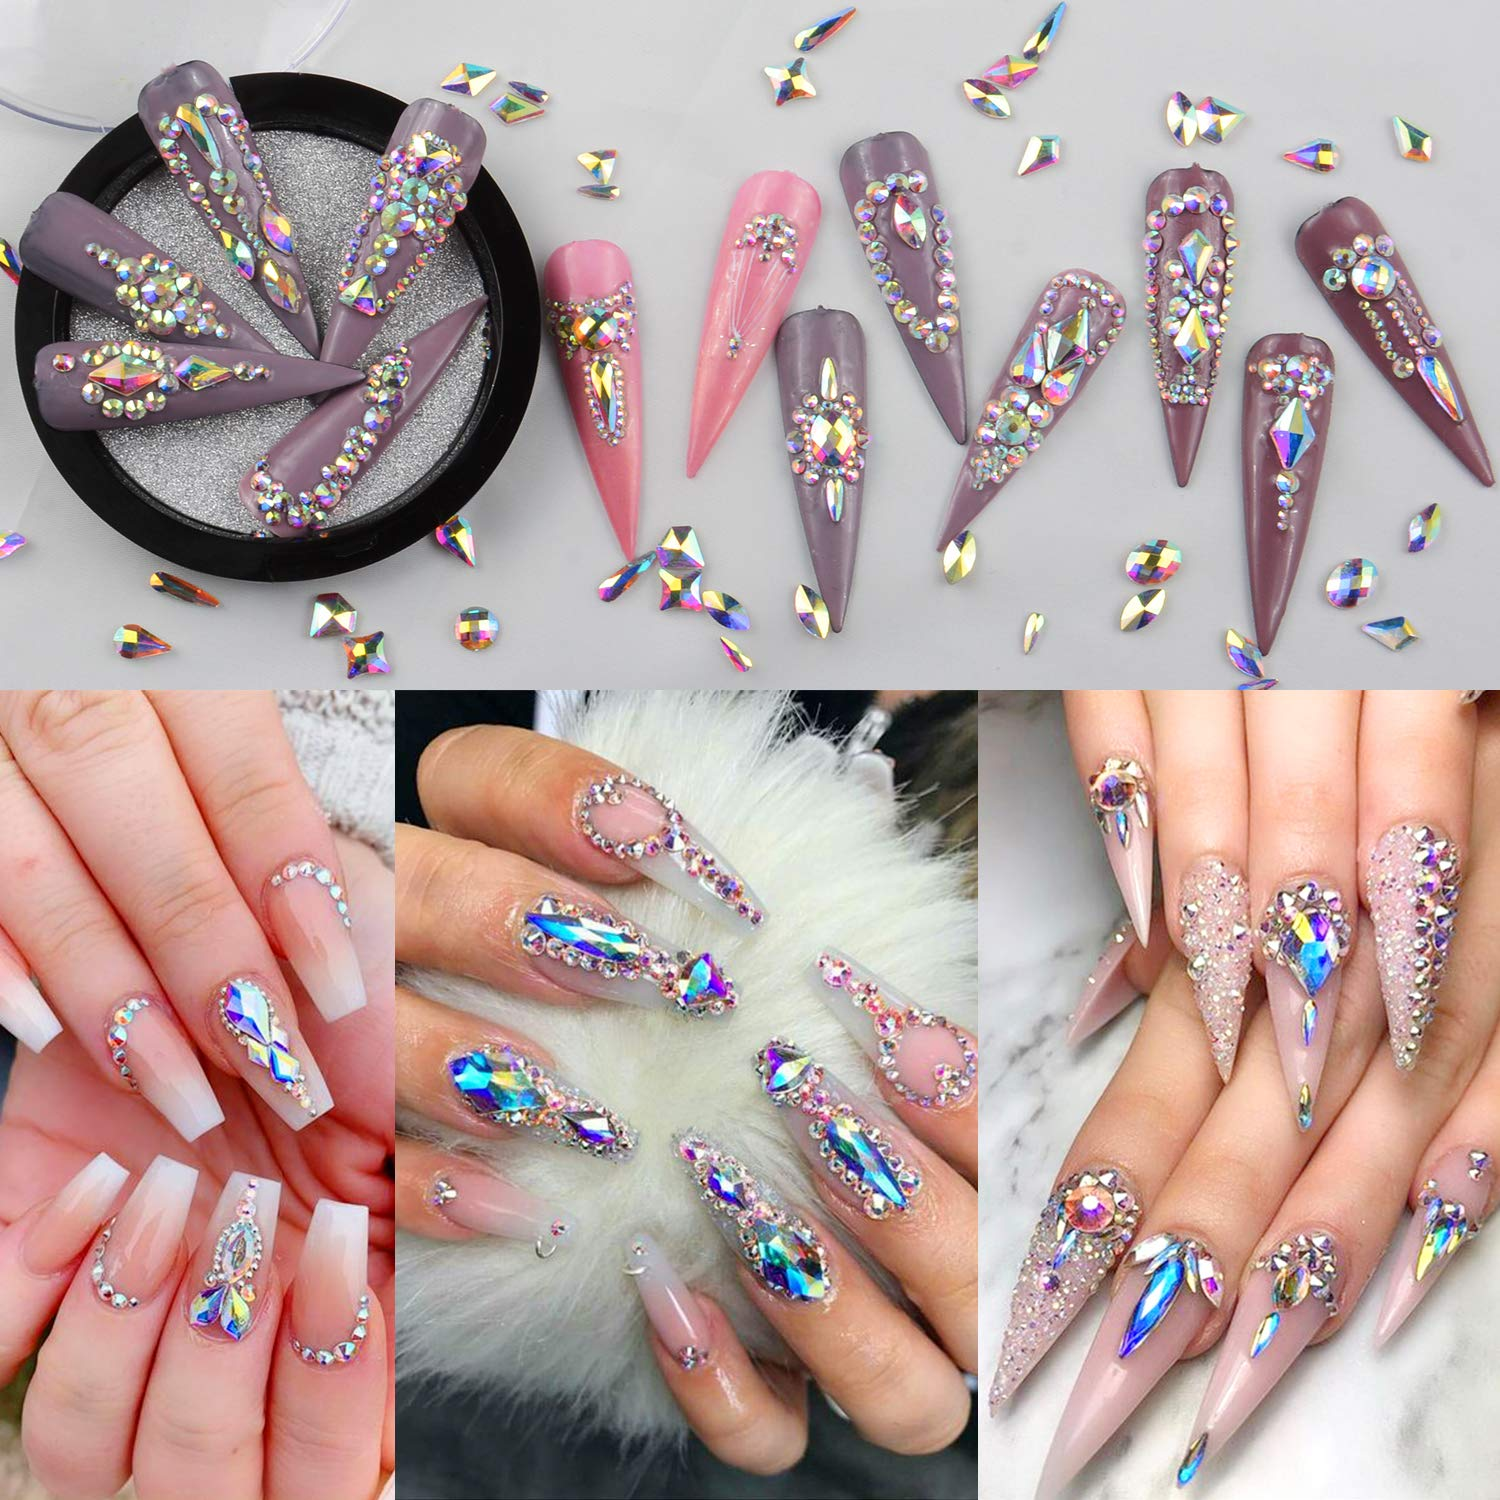 Review about 1840pcs Rhinestones Nail Art Set Nail Gems Iridescent Clear Class Multi Shape Flat Back Shiny Nail Jewels for Nail Art DIY Crafts Phones Clothes Shoes Jewelry Bag